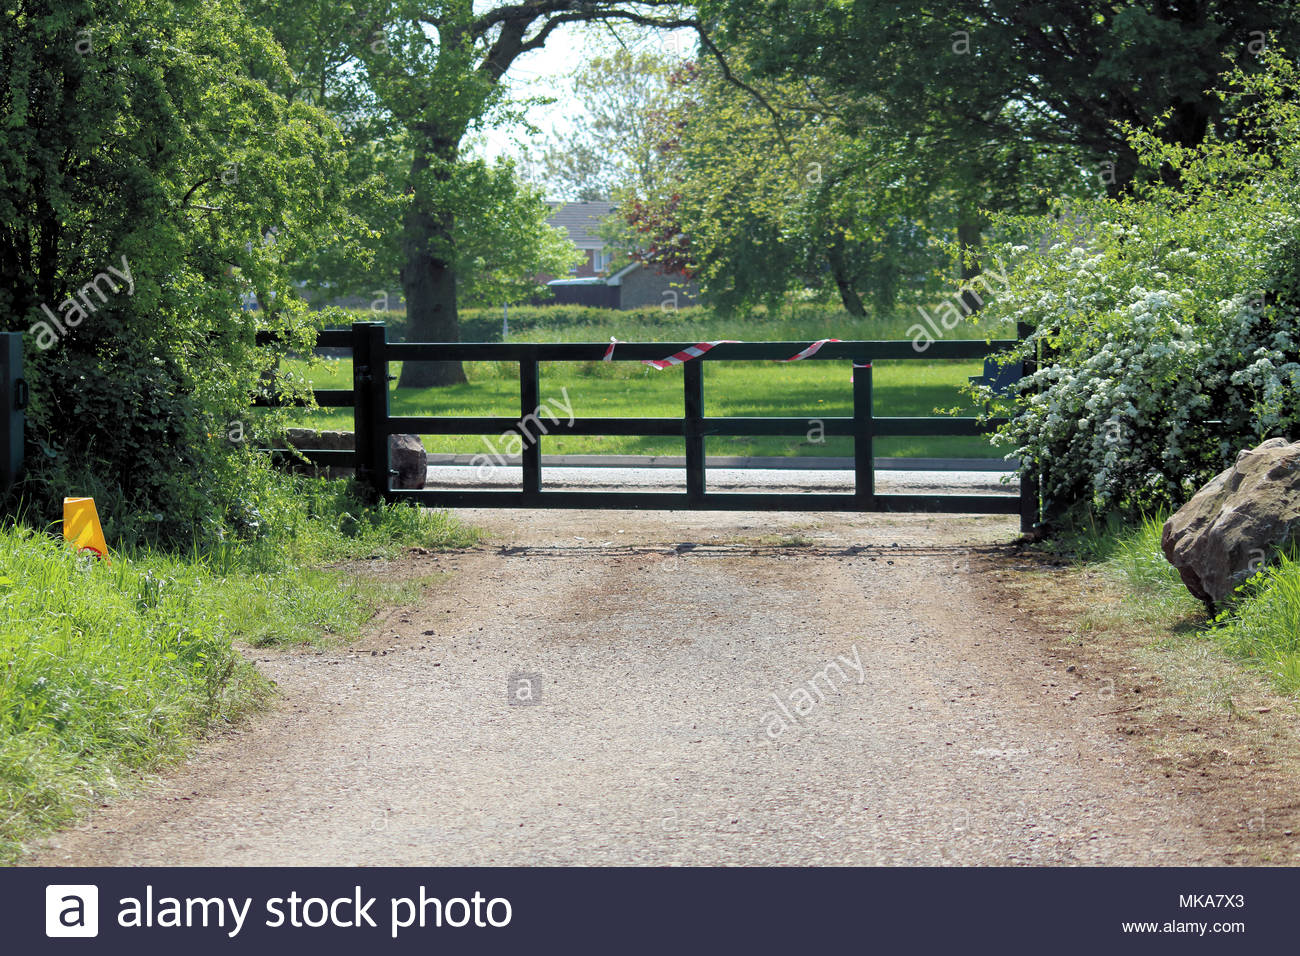 Road to Nowhere, used for TV filming, Yate, Bristol, UK Stock Photo